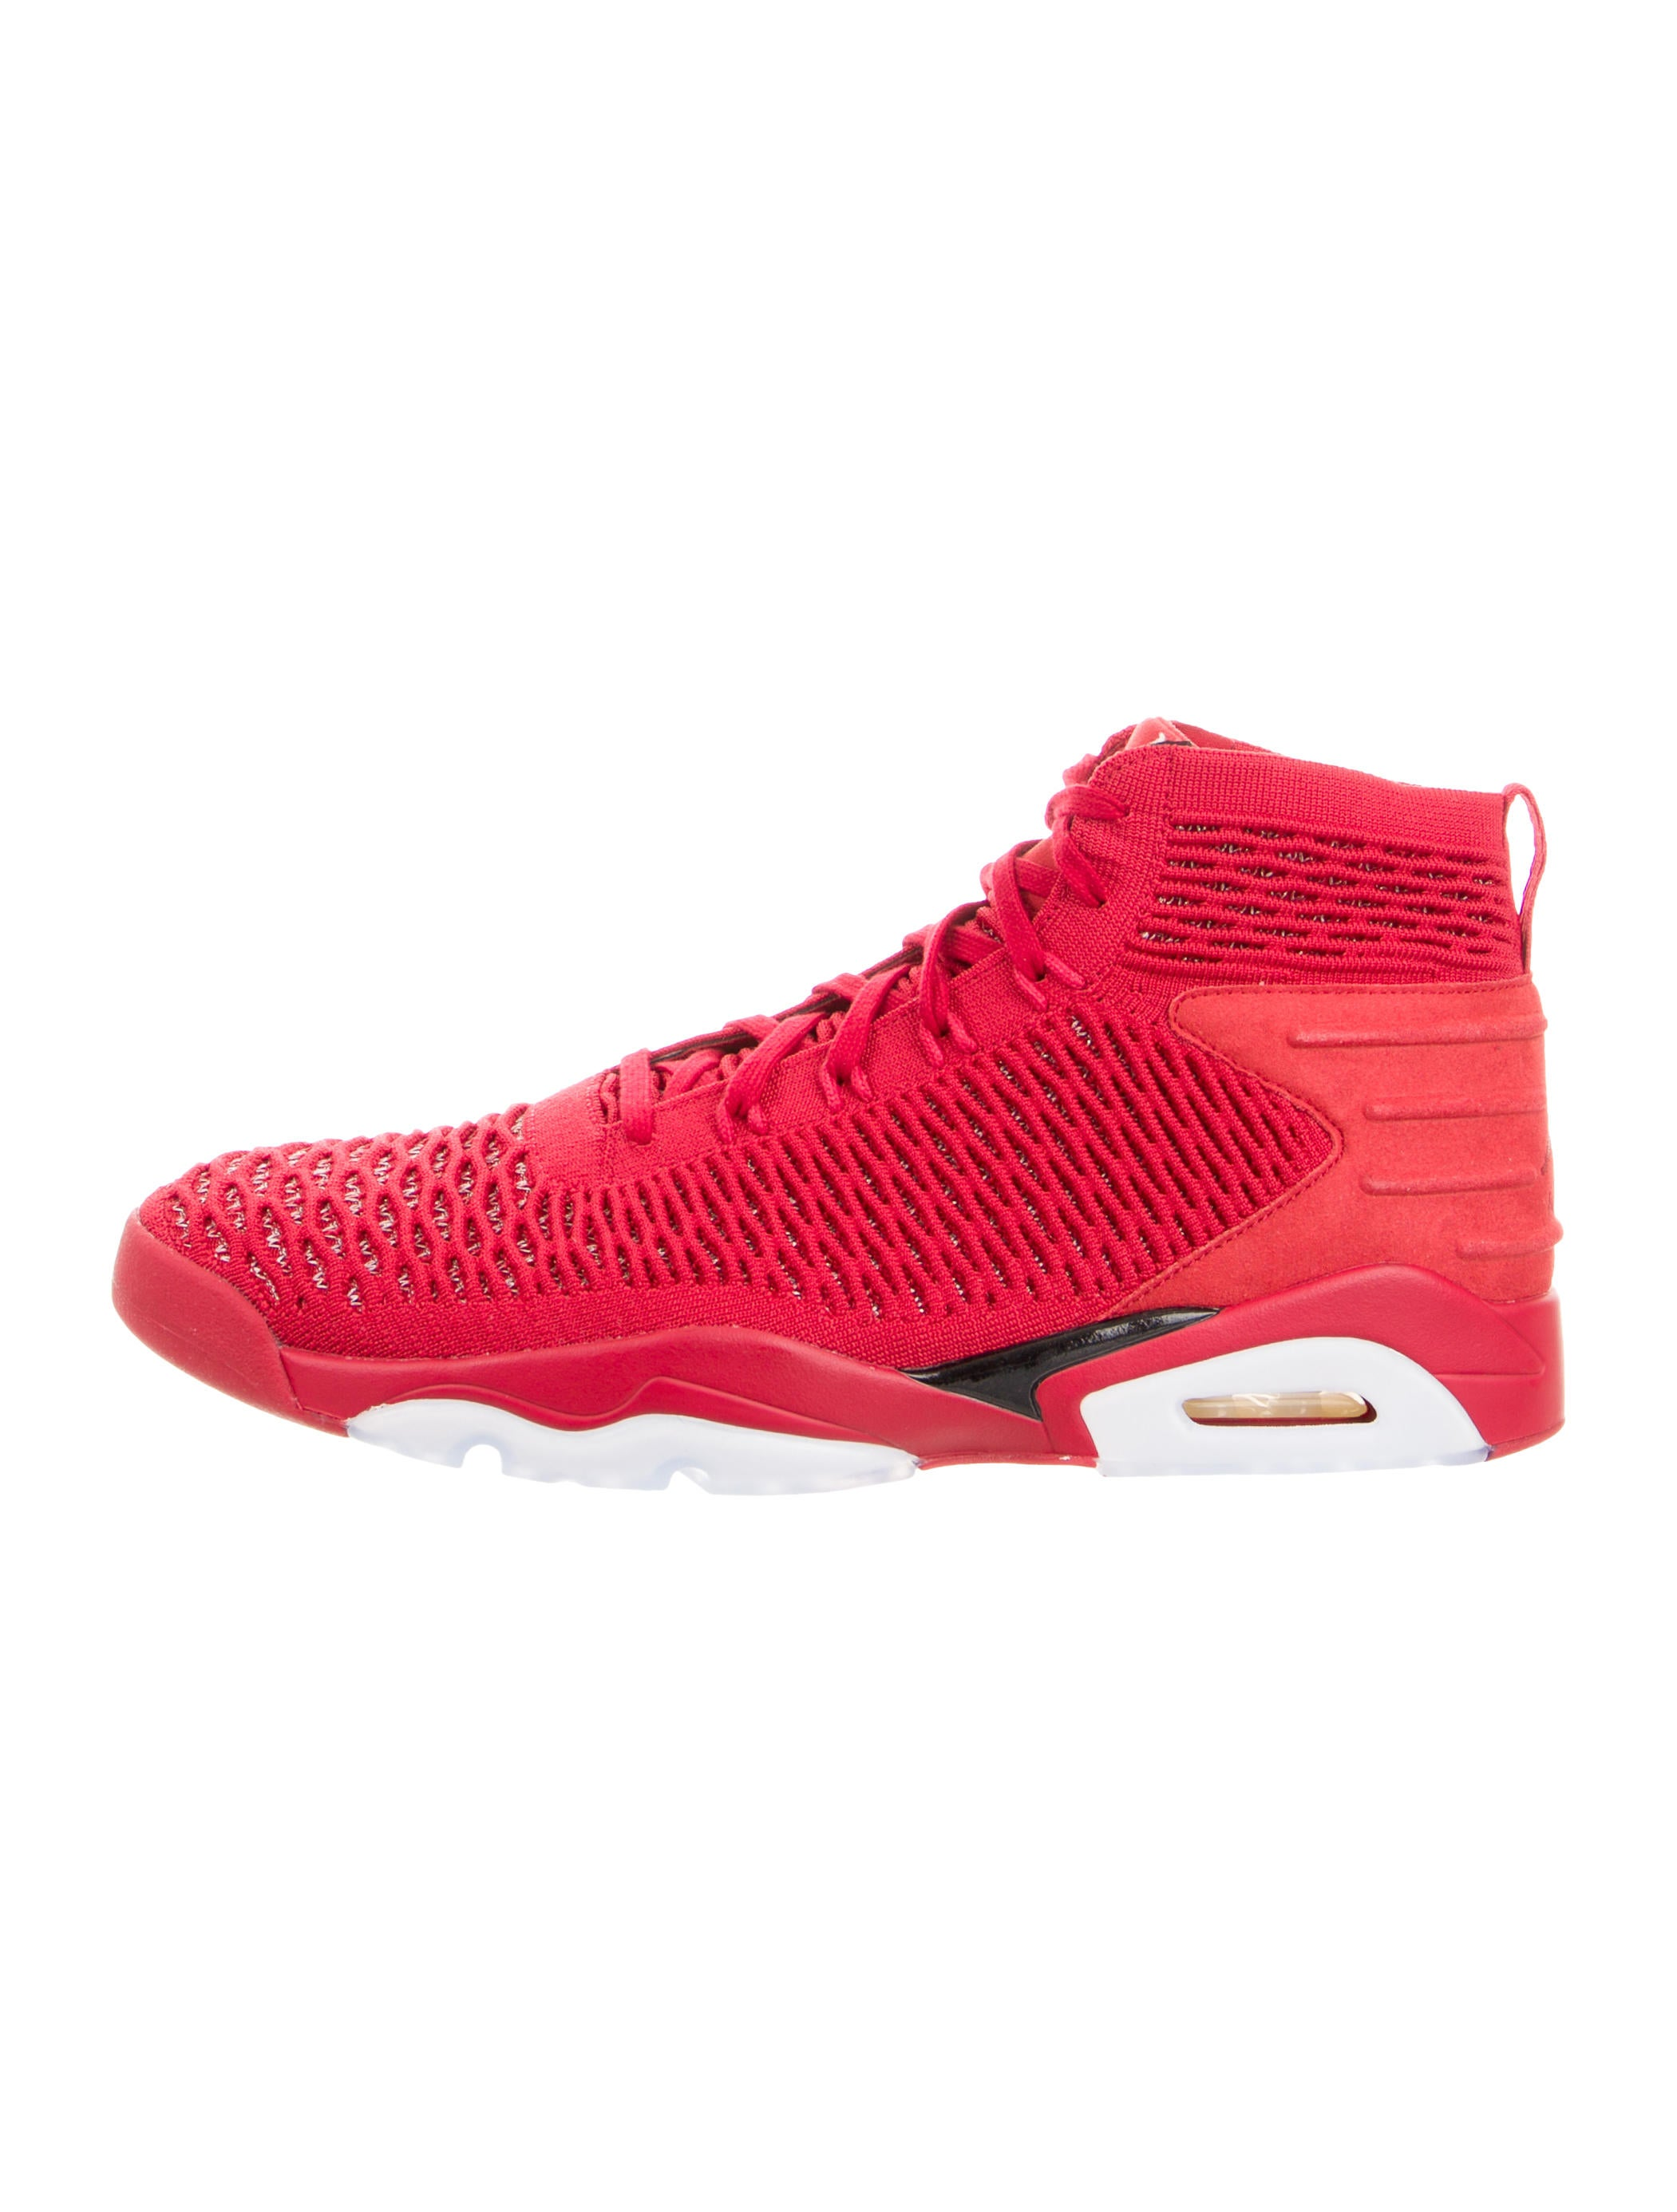 pretty nice bc869 056af Jordan Flyknit Elevation 23 Red Sneakers - Shoes - WJORA21179   The ...